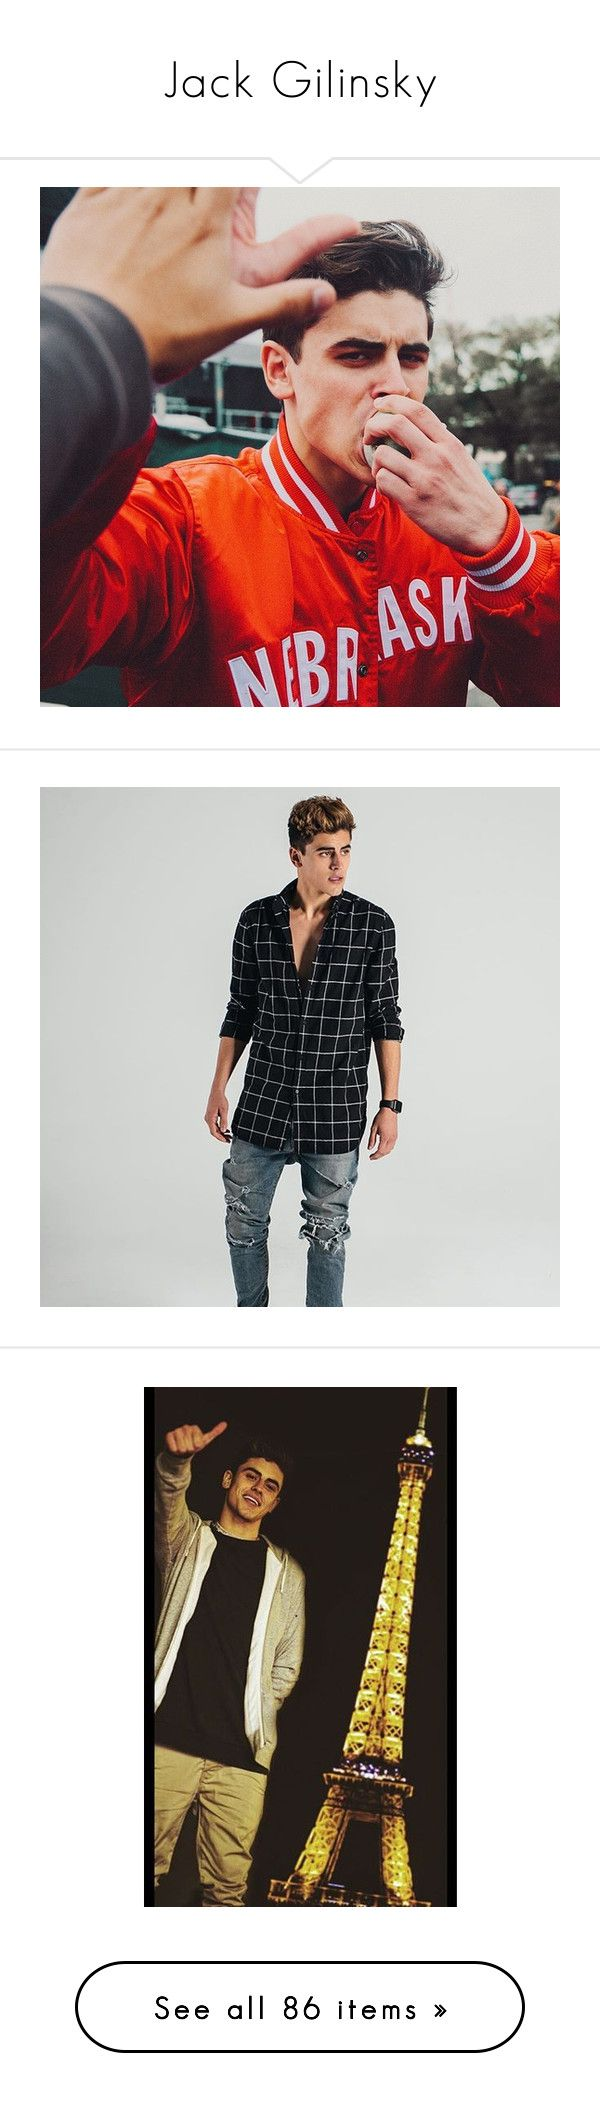 """""""Jack Gilinsky"""" by beingmyselfaf on Polyvore featuring magcon, magconboys, jackgilinsky, beauty products, haircare, hair color, jack gilinsky, jack, pictures and jack g"""